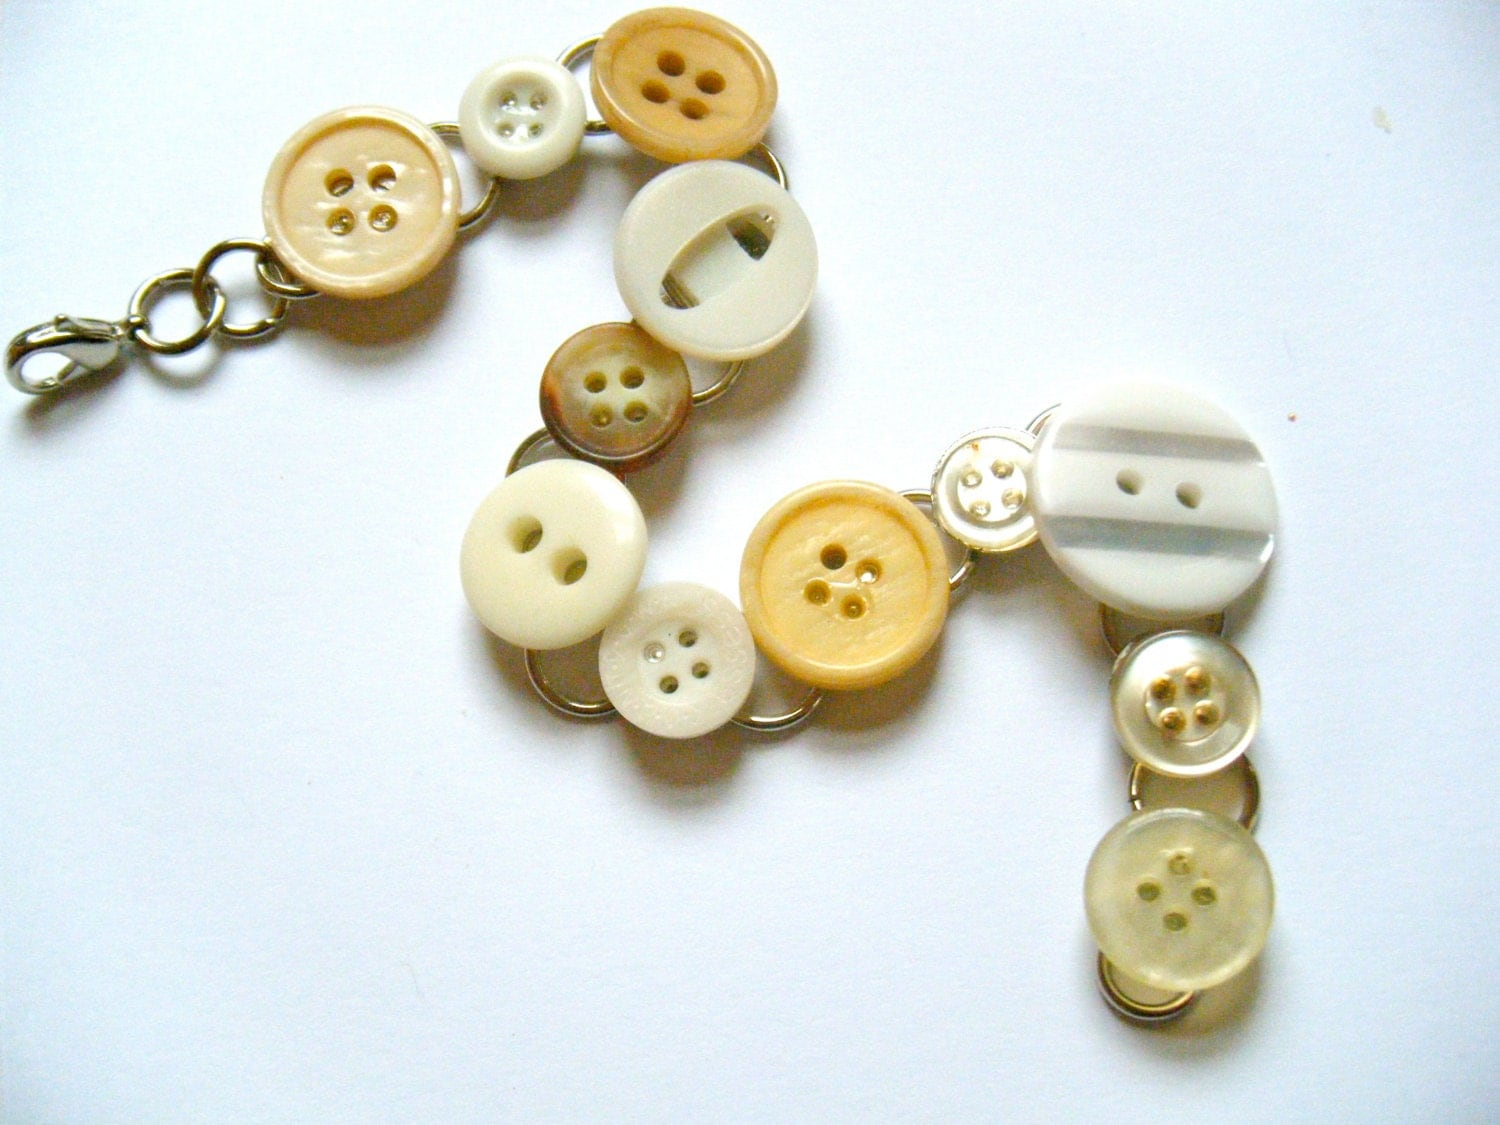 OOAK Vintage Buttons Metal Bracelet Recycled Material Silver Beige Sewing Upcycled Repurposed Funky Seamstress Circle Mixed Media Jewelry